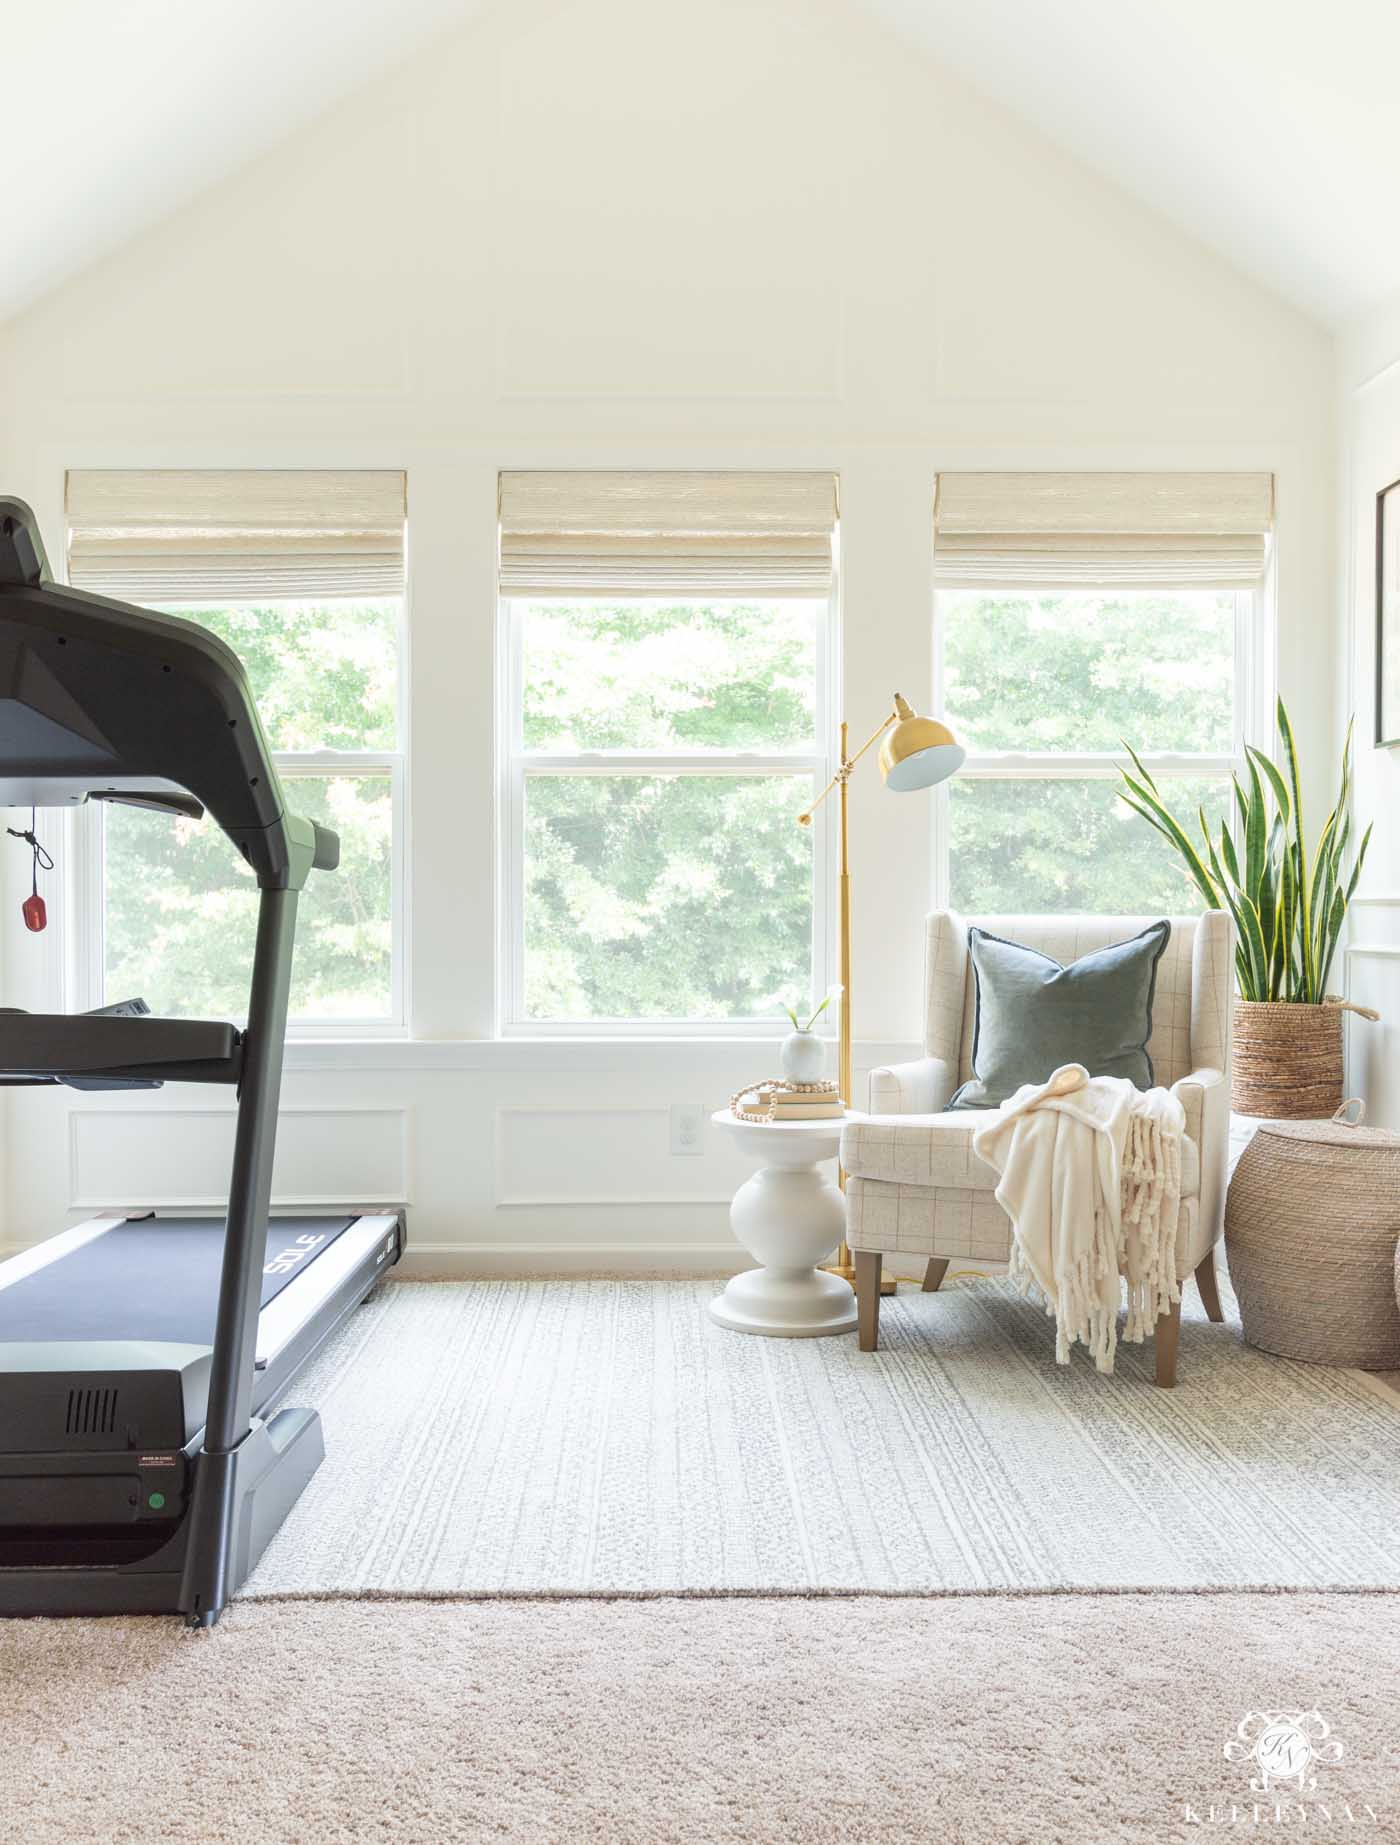 Decorating a Master Bedroom SItting Area with Treadmill Workout Equipment